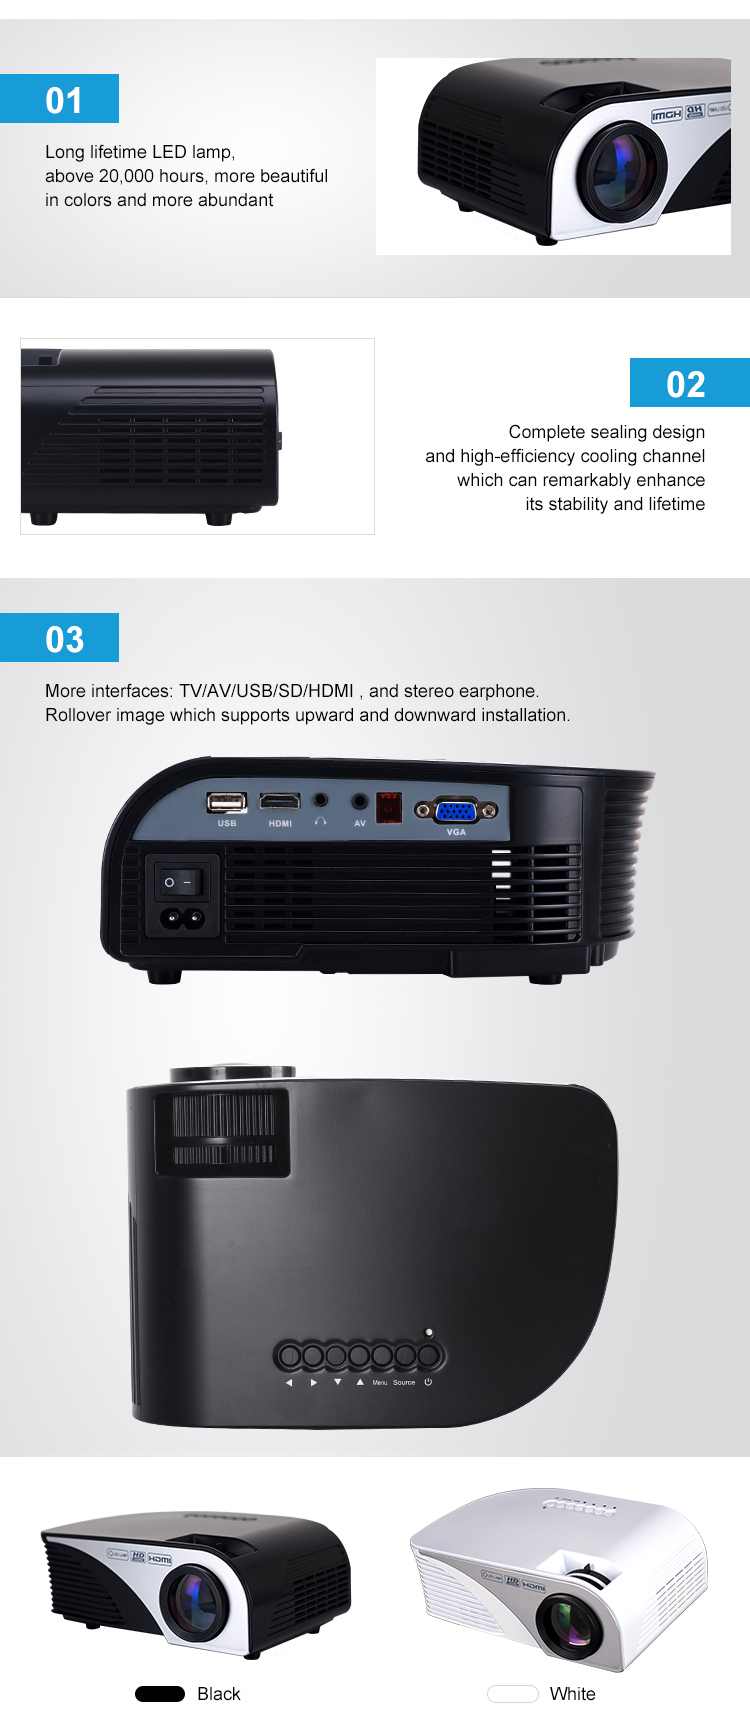 2019 Mini projector mobile phone 1080P full hd 3d android wifi pico projector movie TV home theater cheap projector Beamer